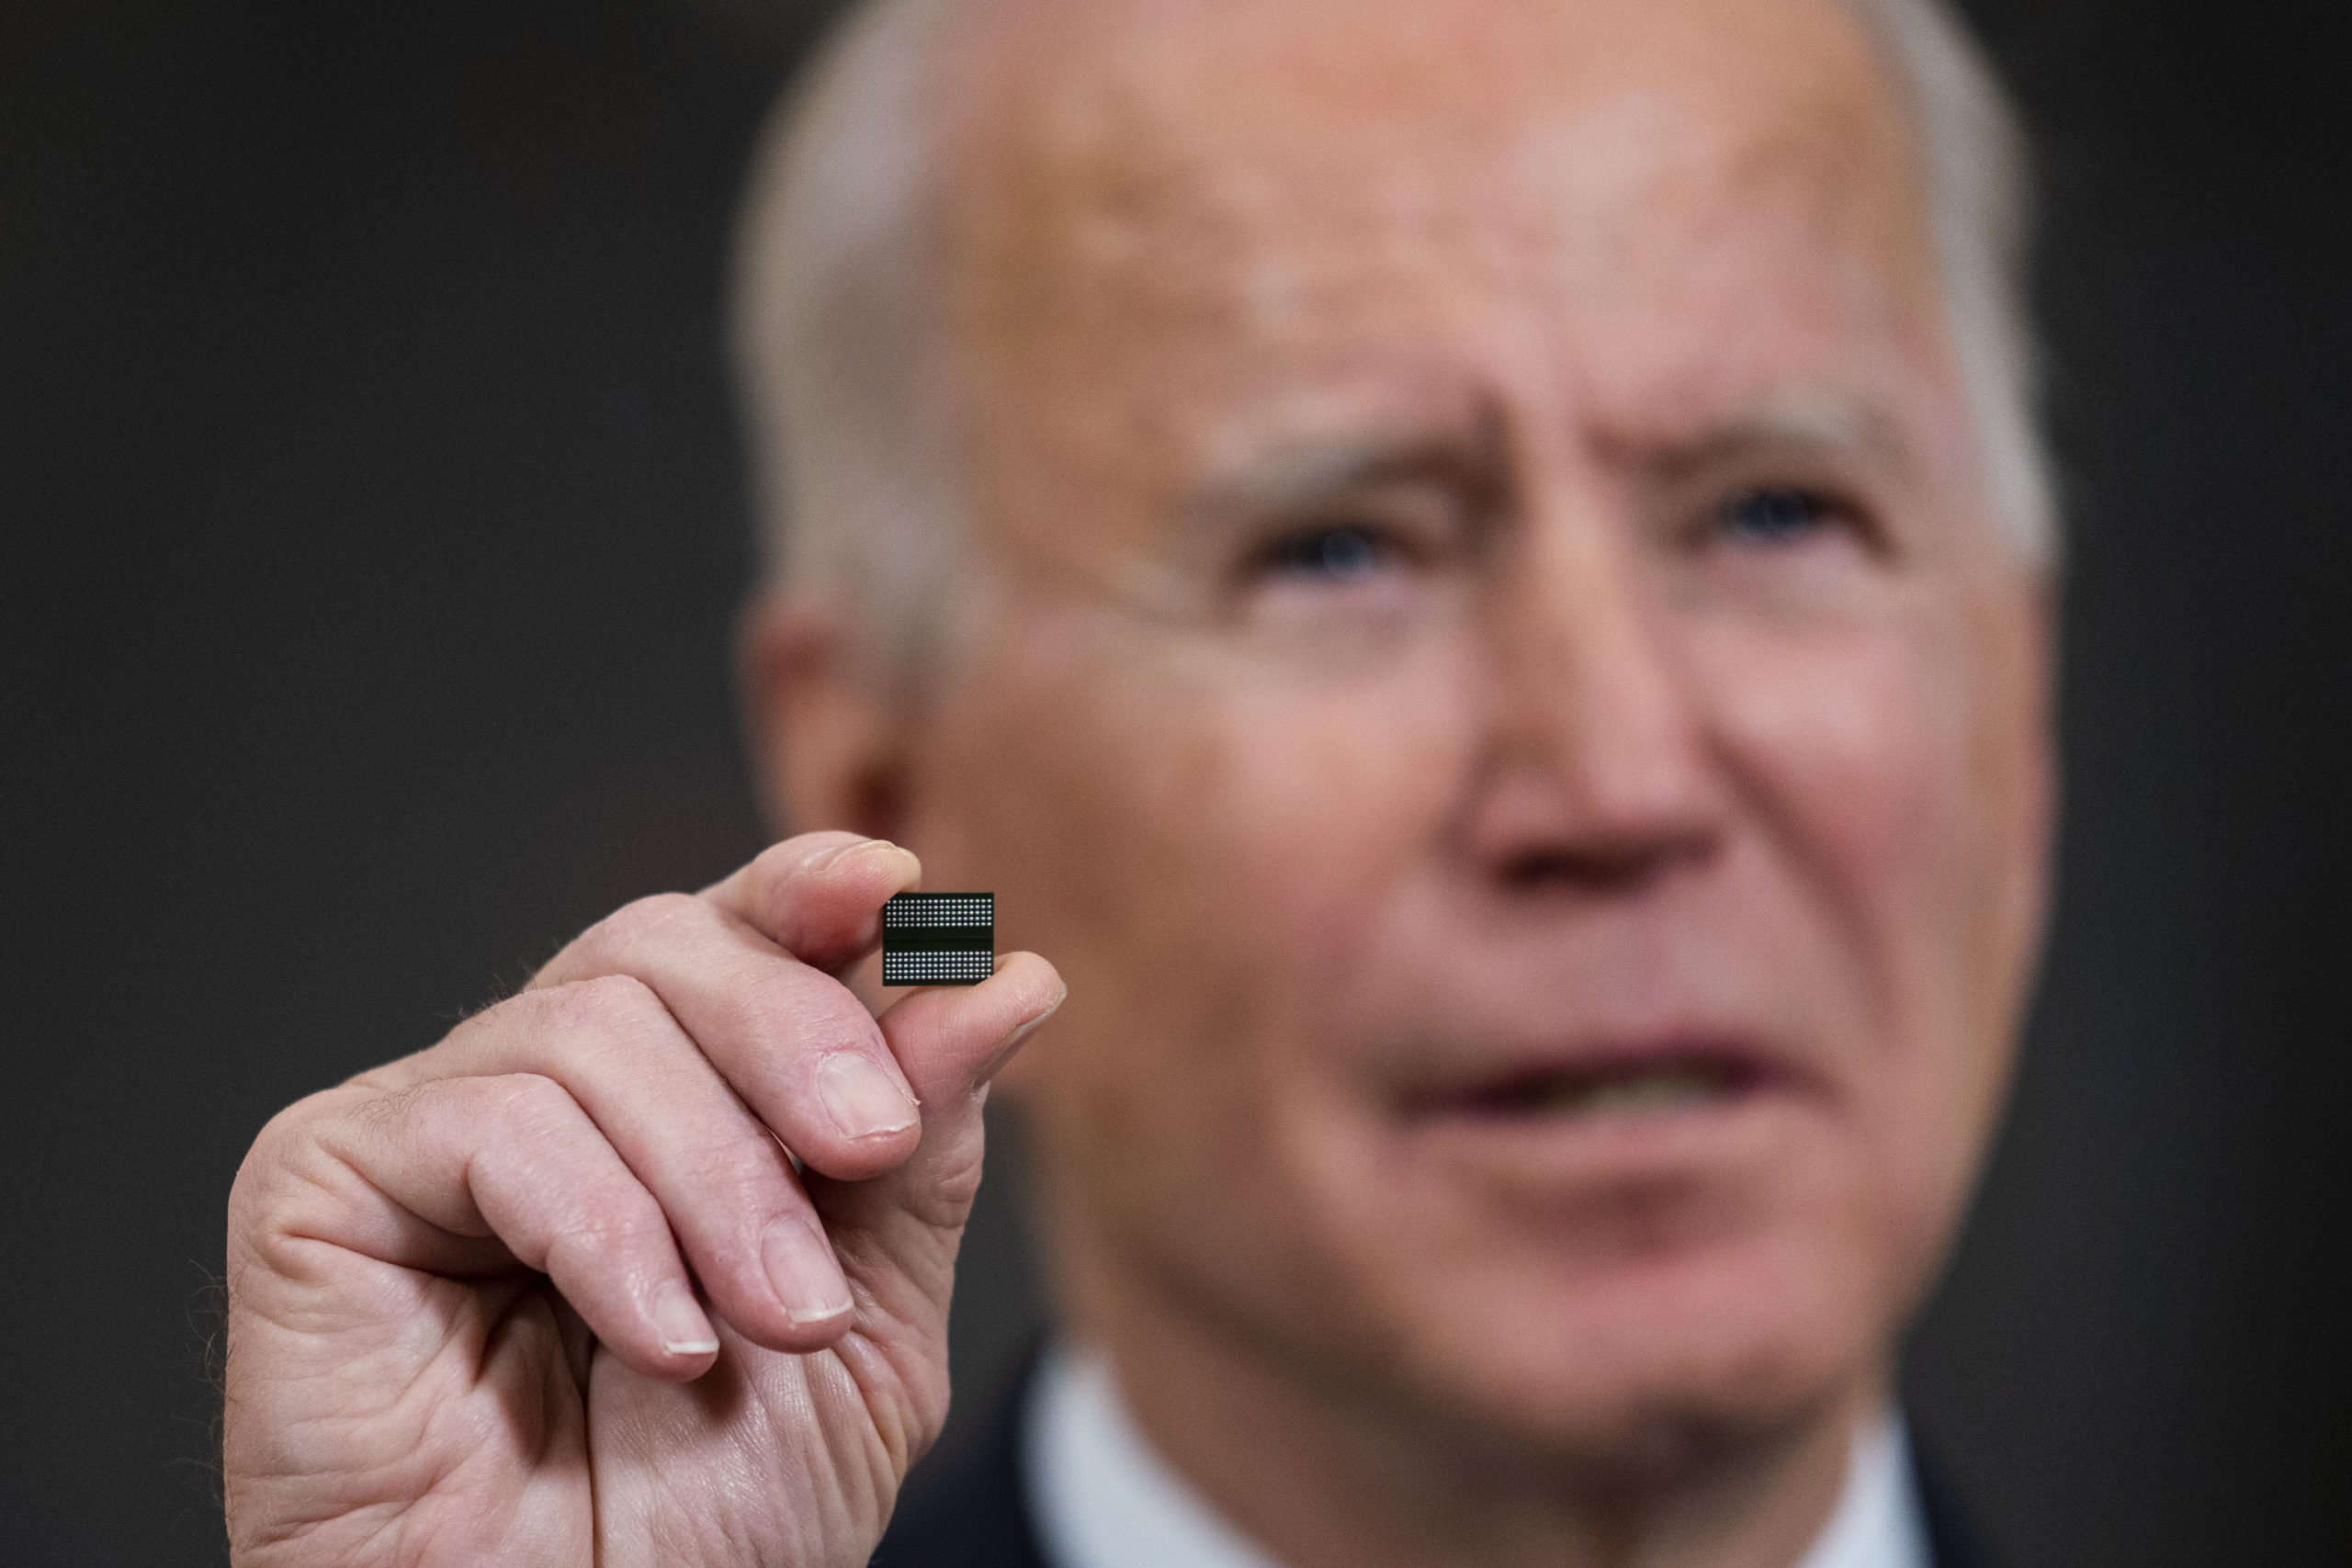 WASHINGTON, DC - FEBRUARY 24: U.S. President Joe Biden holds a semiconductor during his remarks before signing an Executive Order on the economy in the State Dining Room of the White House on February 24, 2021 in Washington, DC. (Photo by Doug Mills/Pool/Getty Images)